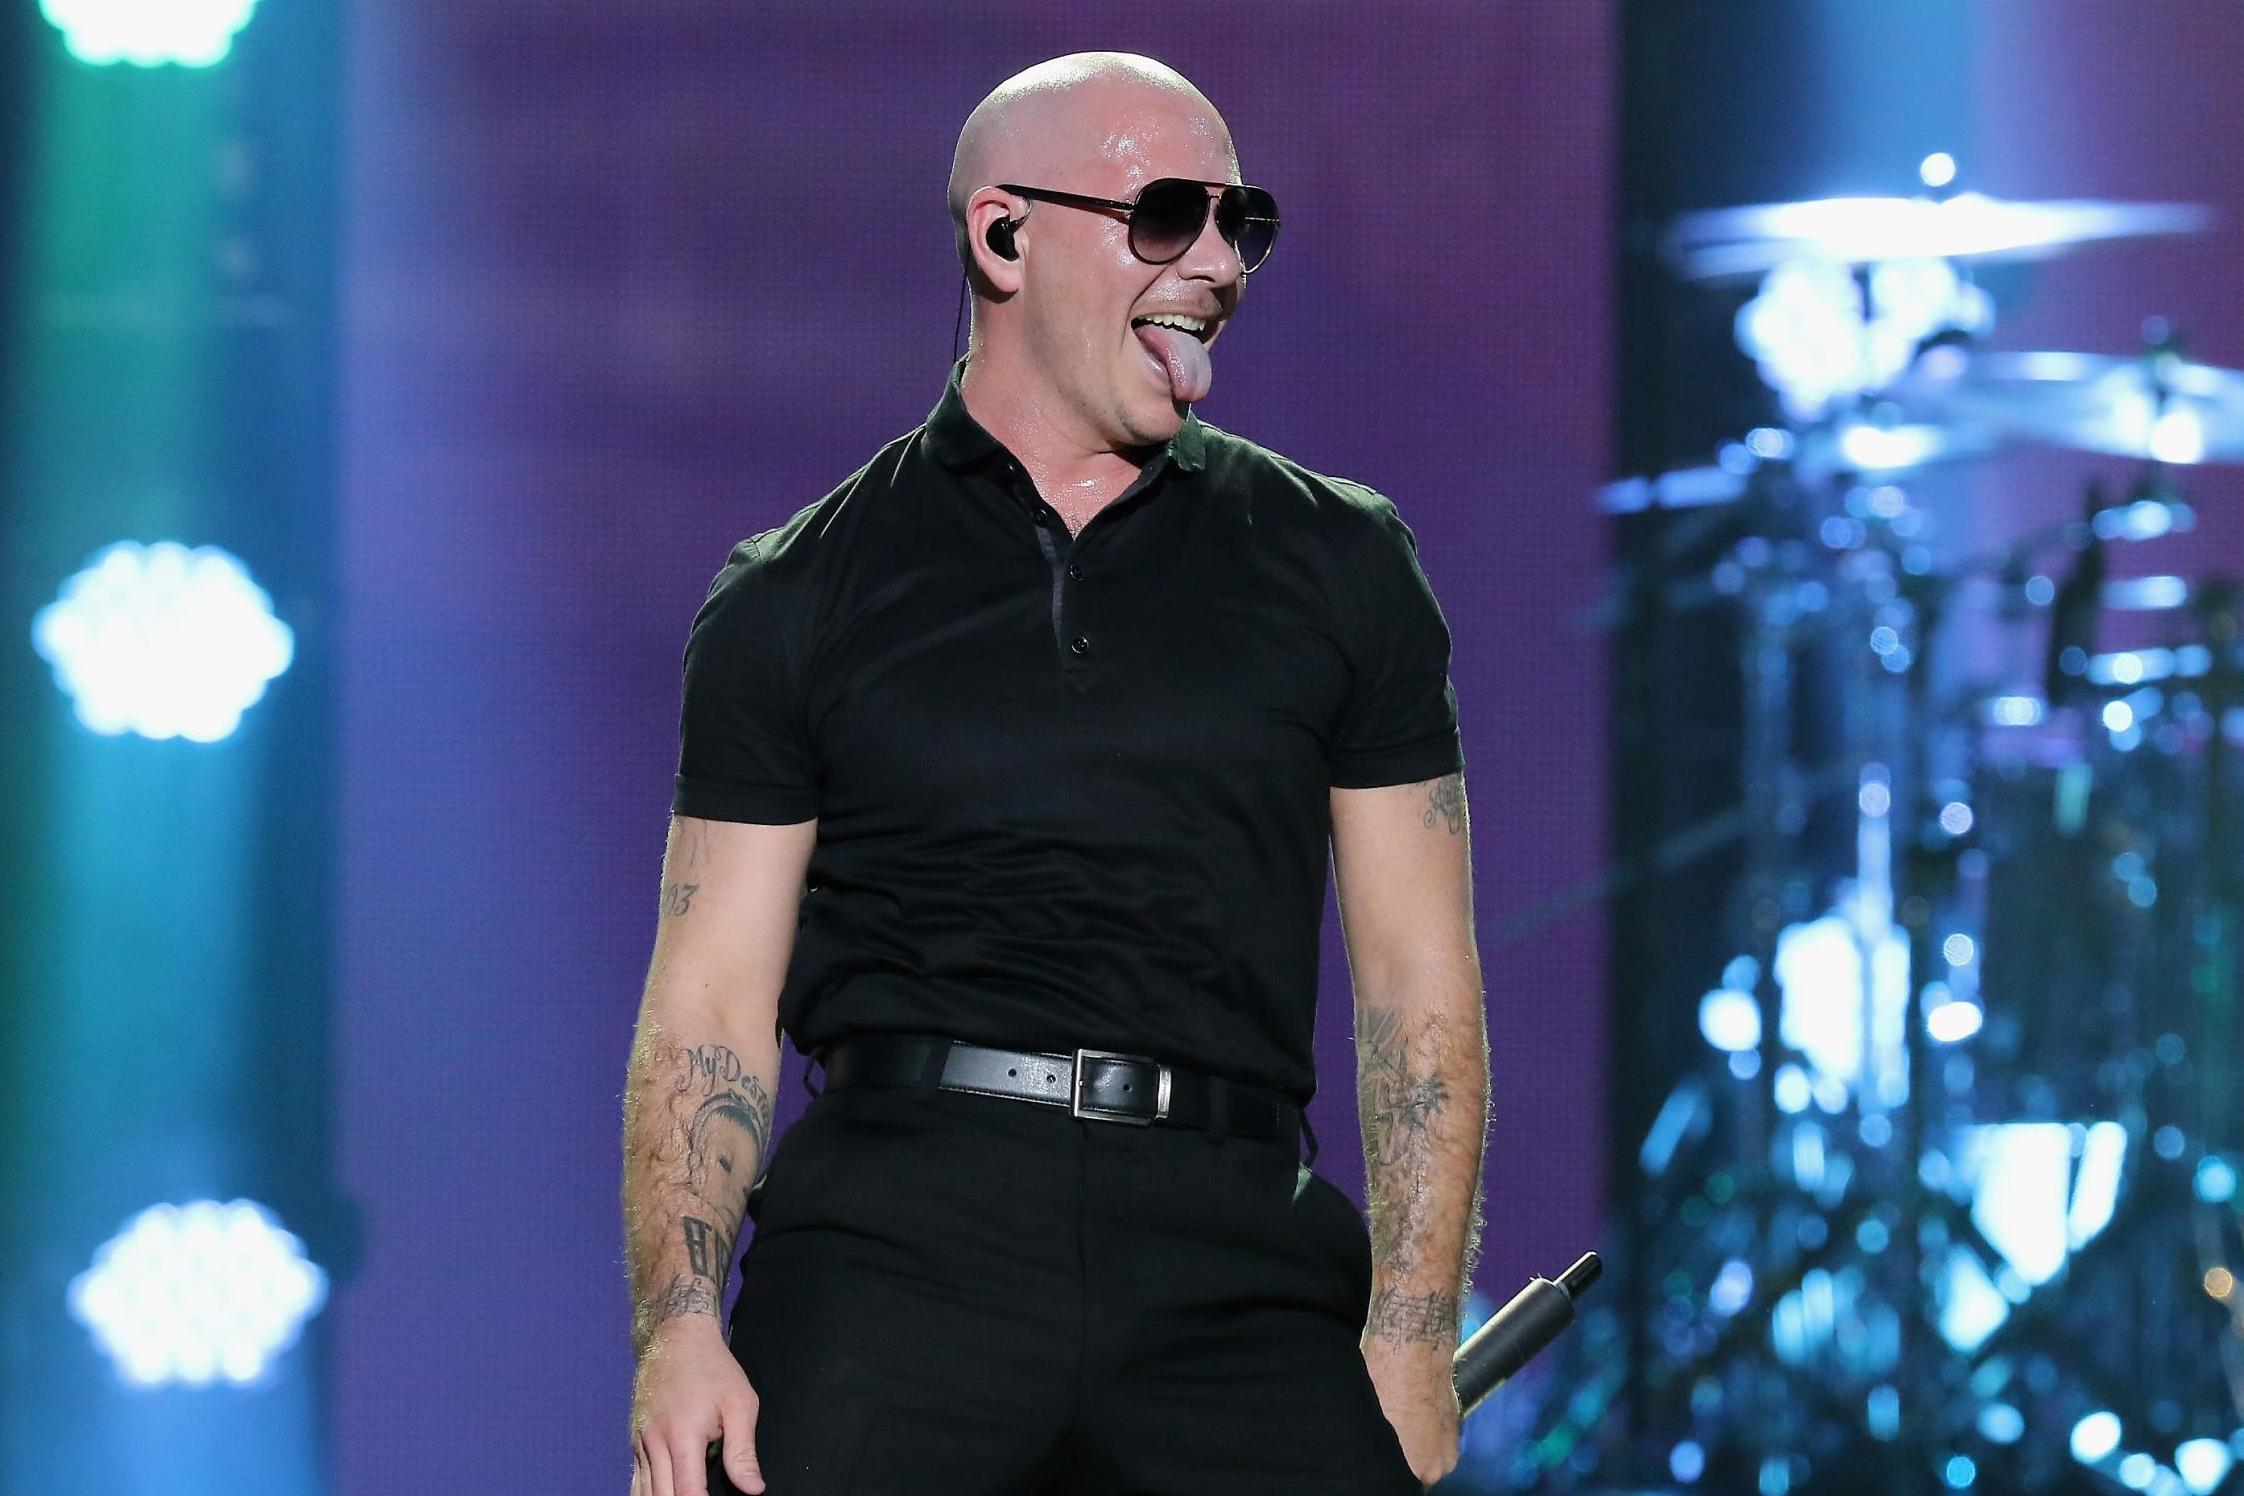 Pitbull covers Toto's 'Africa' for Aquaman soundtrack | The